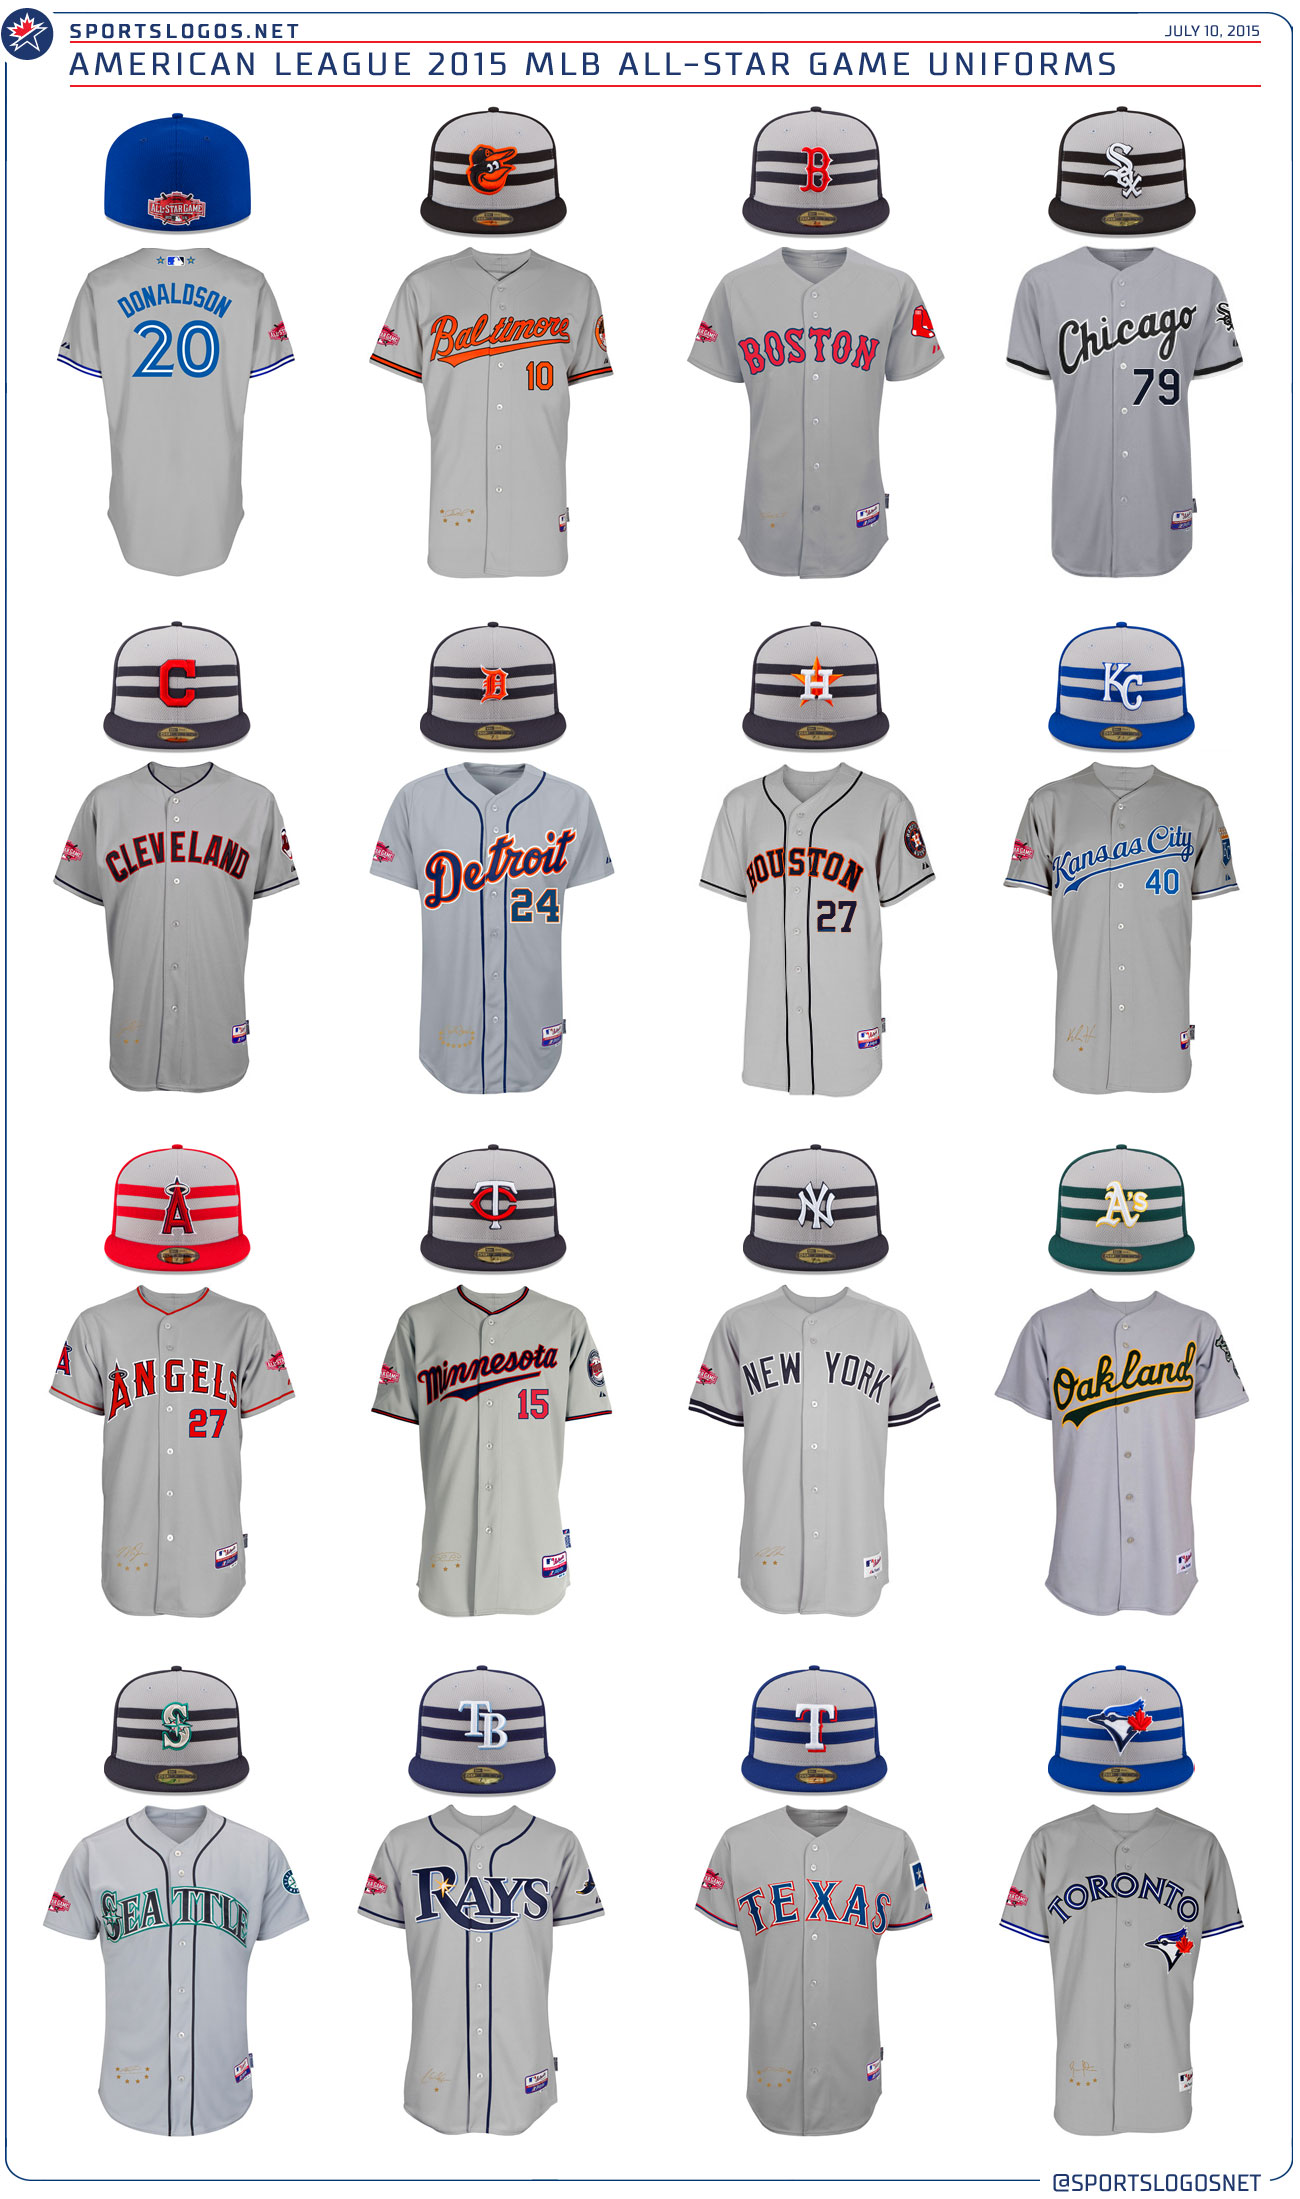 2015 American League All-Star Game Uniforms